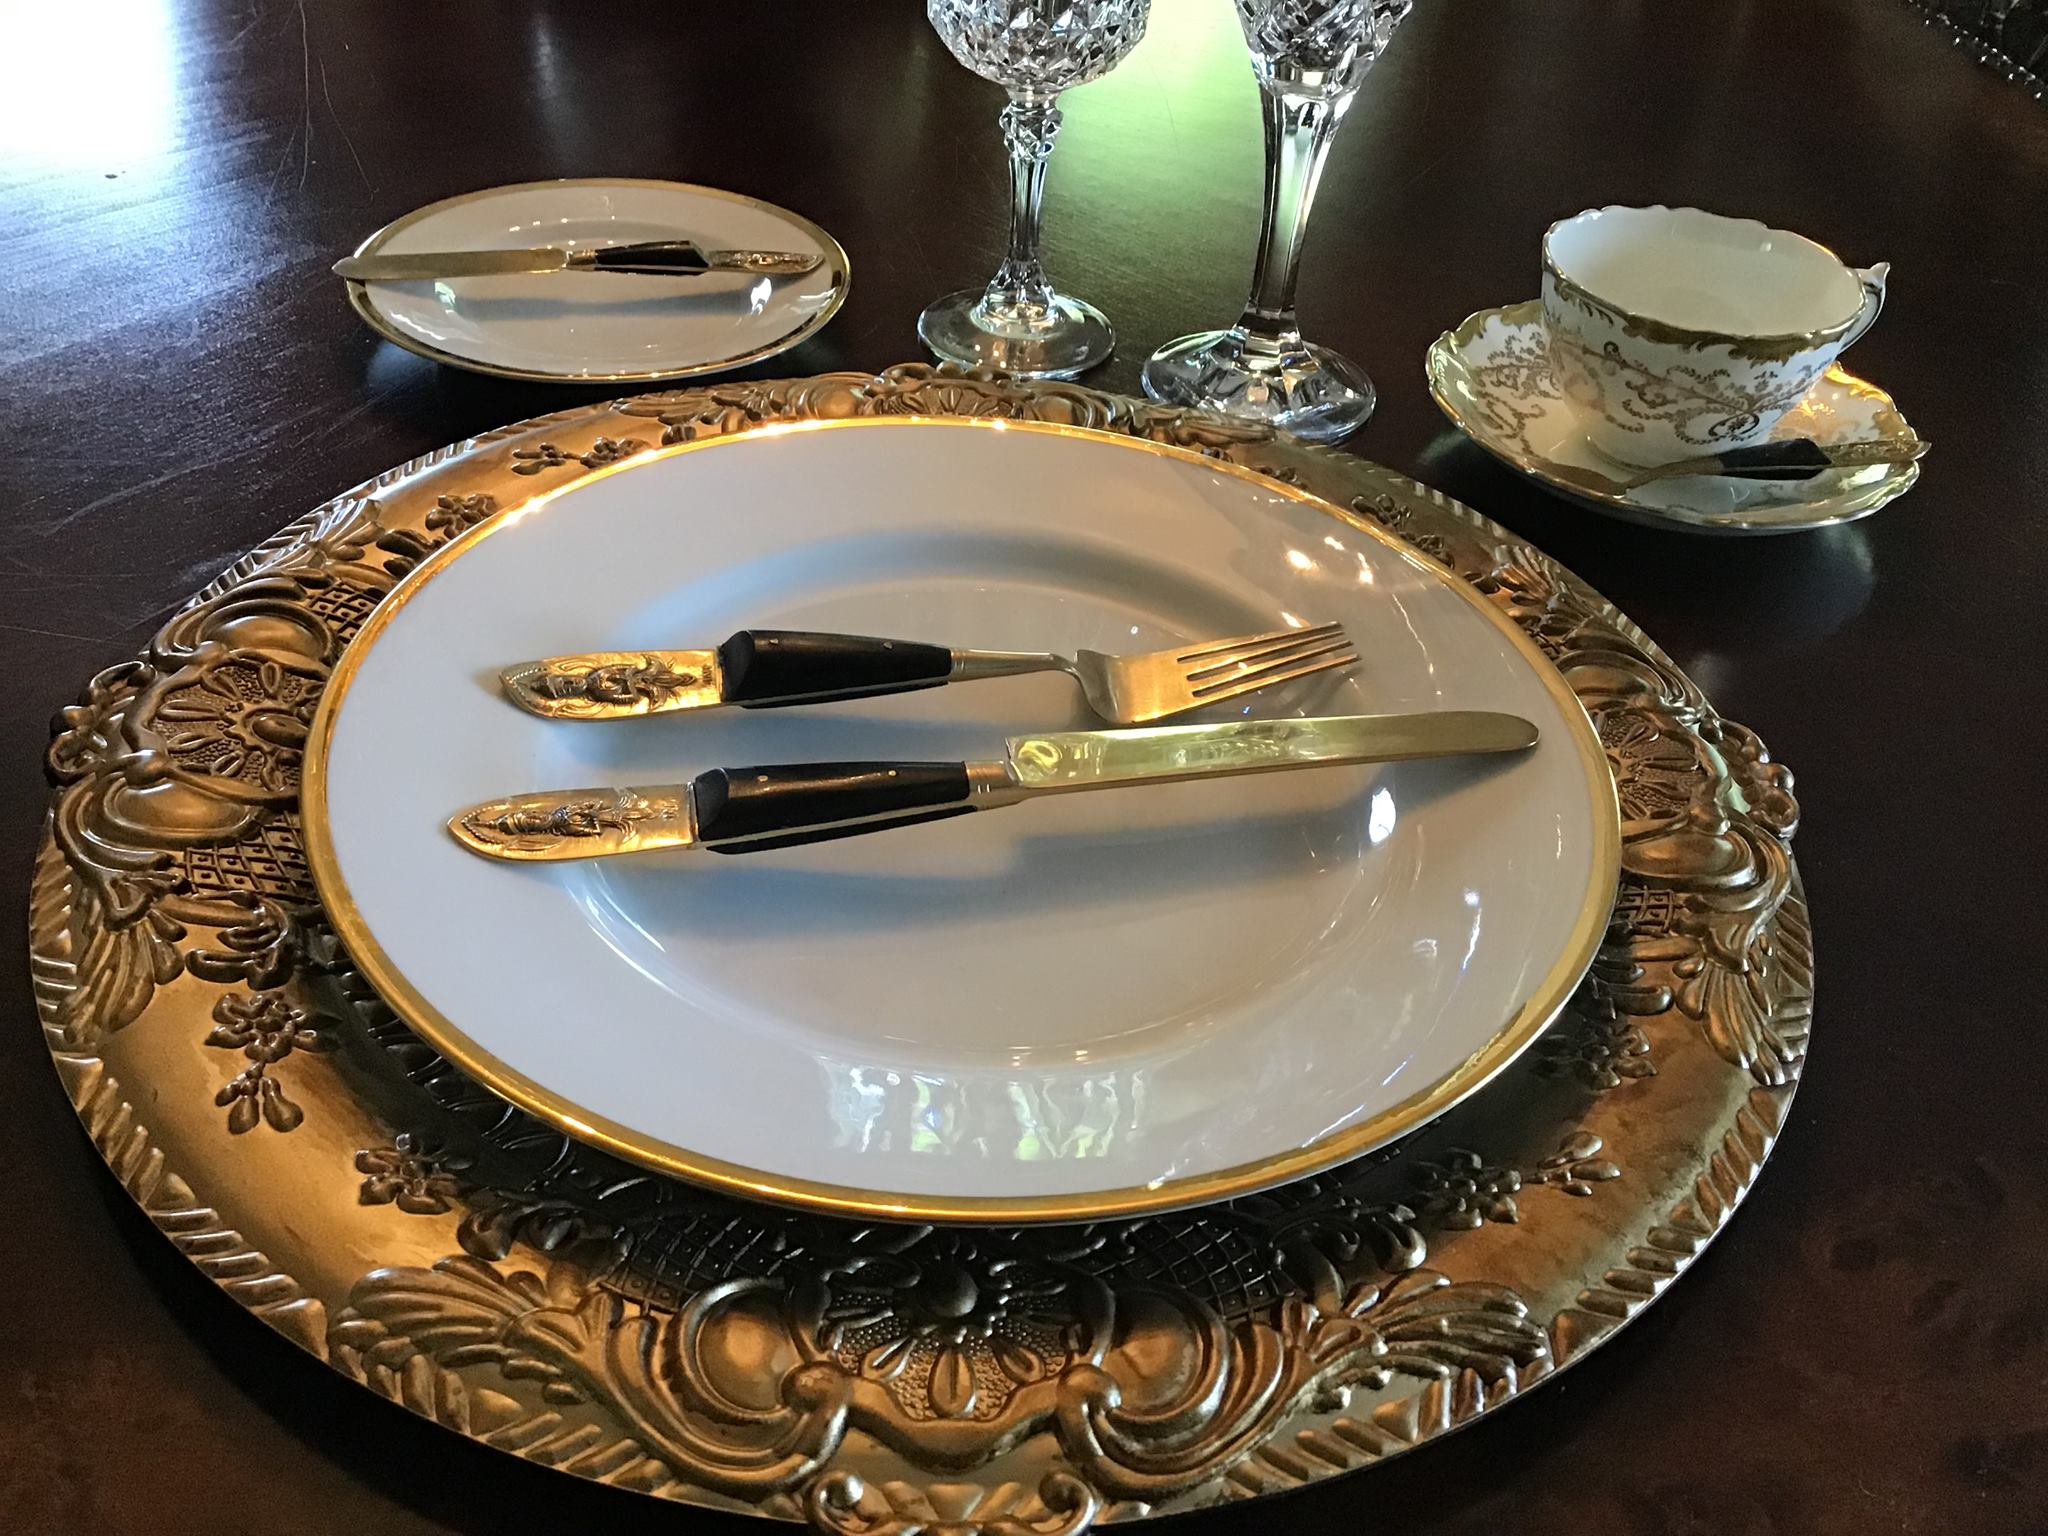 """Mariby Corpening's DID YOU KNOW: Table Etiquette No. 3 - By placement of utensils - """"IT WAS DELICIOUS!"""""""